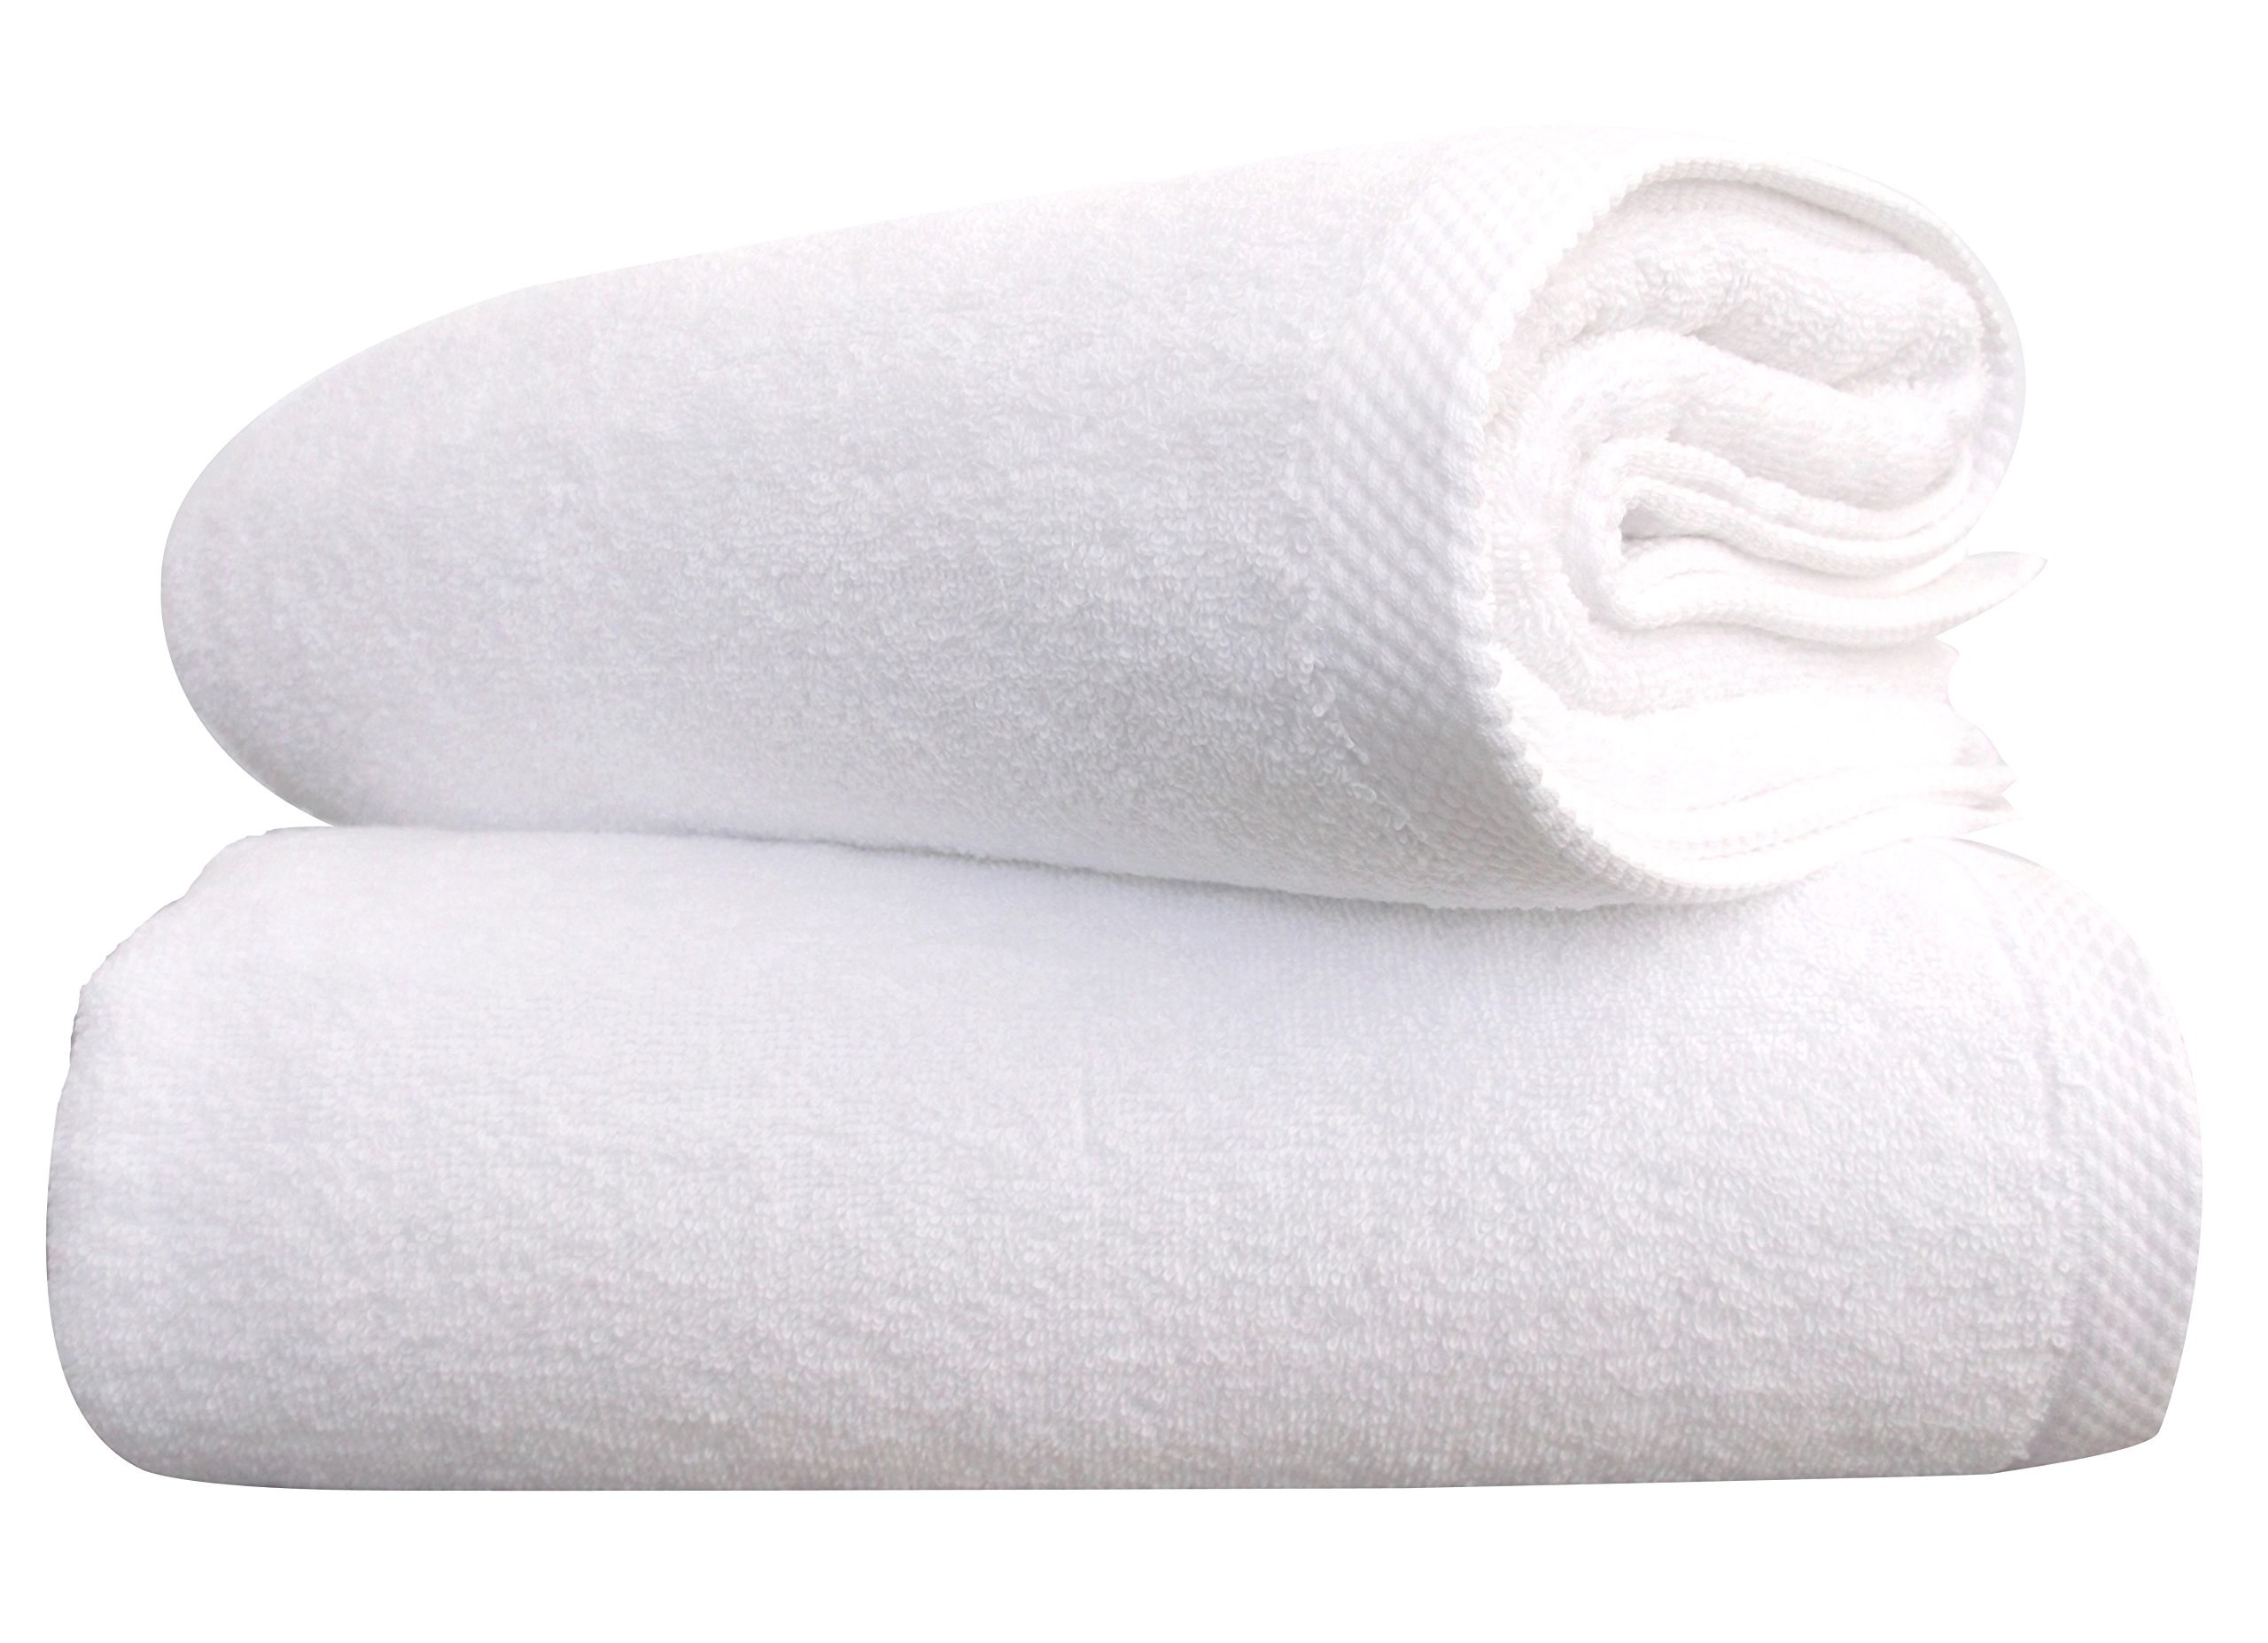 Classic 100% Turkish Cotton Towel Set - Absorbent and Durable Hotel and Spa Quality Towel Set (35x70 Bath Sheet Set)